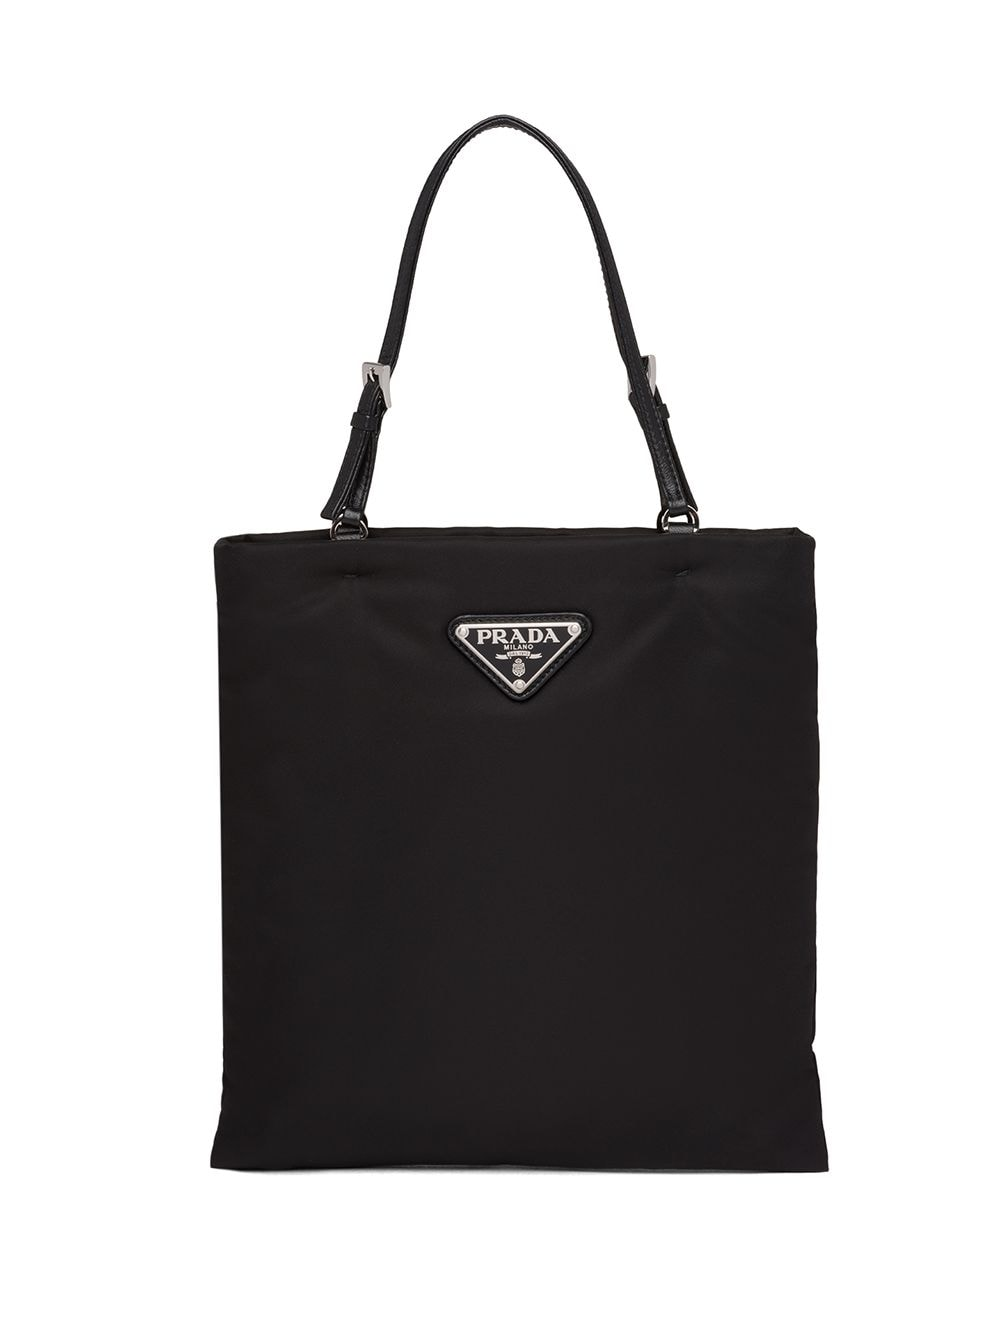 Prada top handle tote bag - Black von Prada